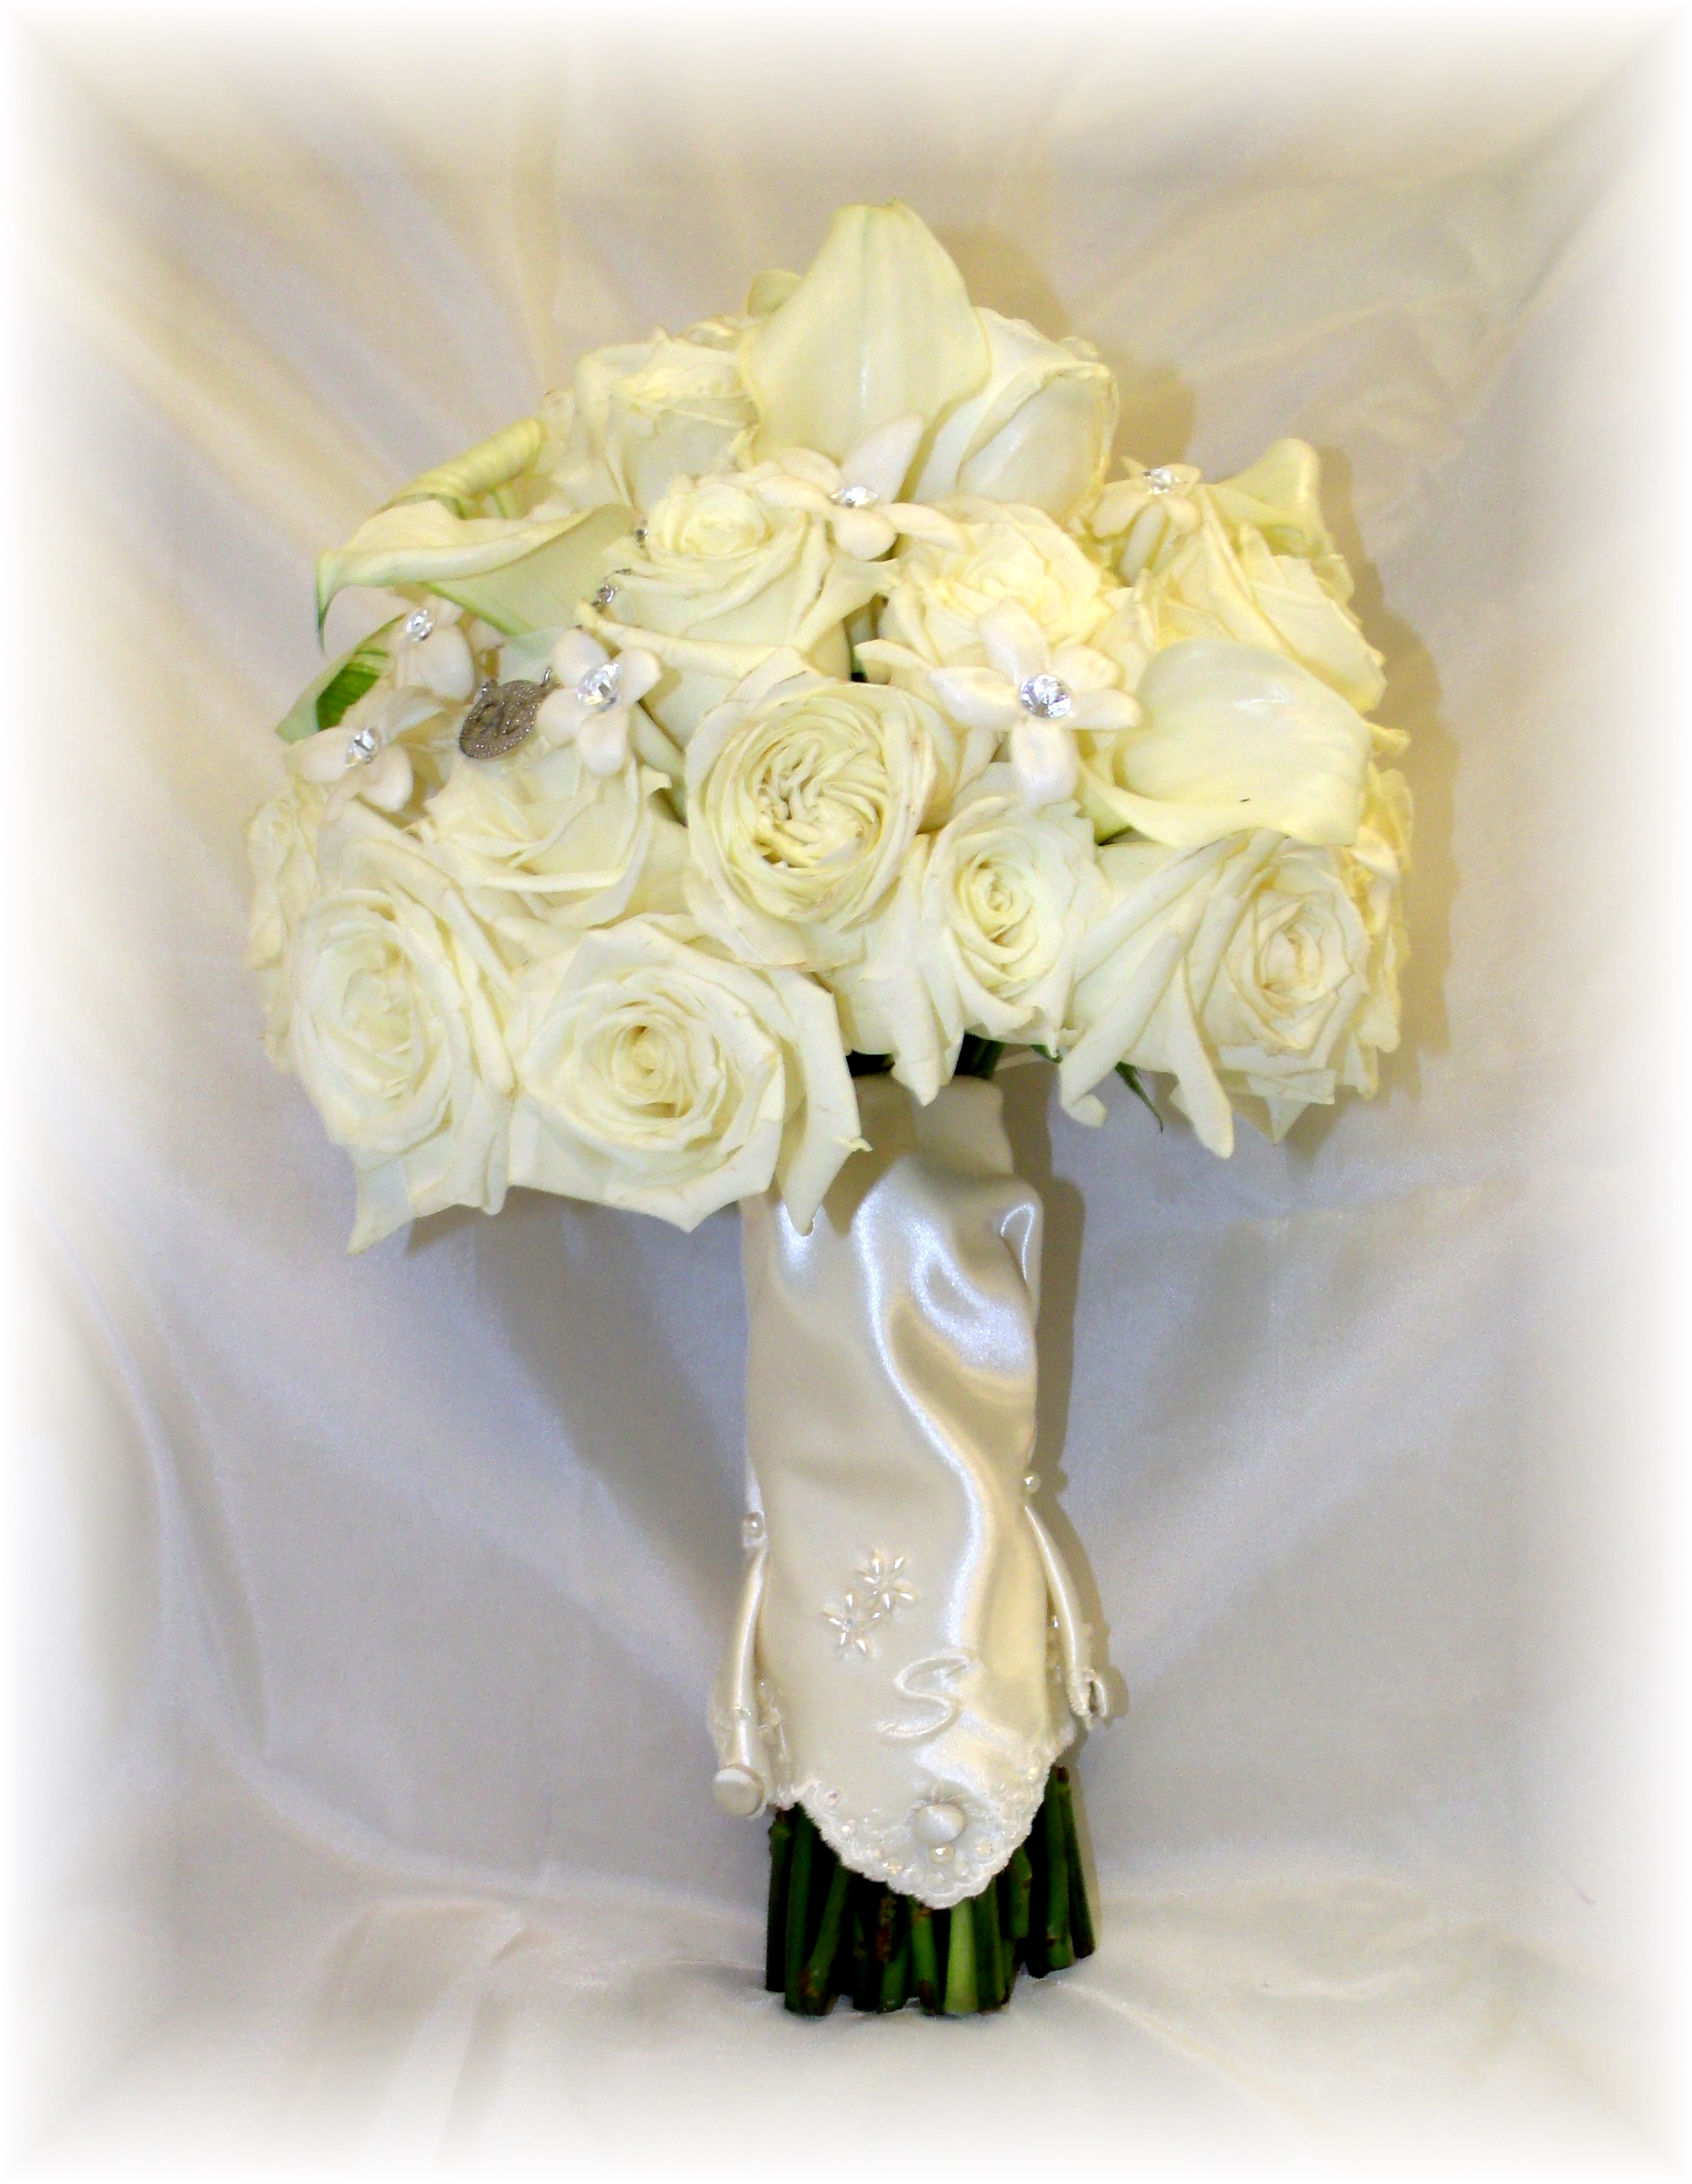 White roses, calla lilies